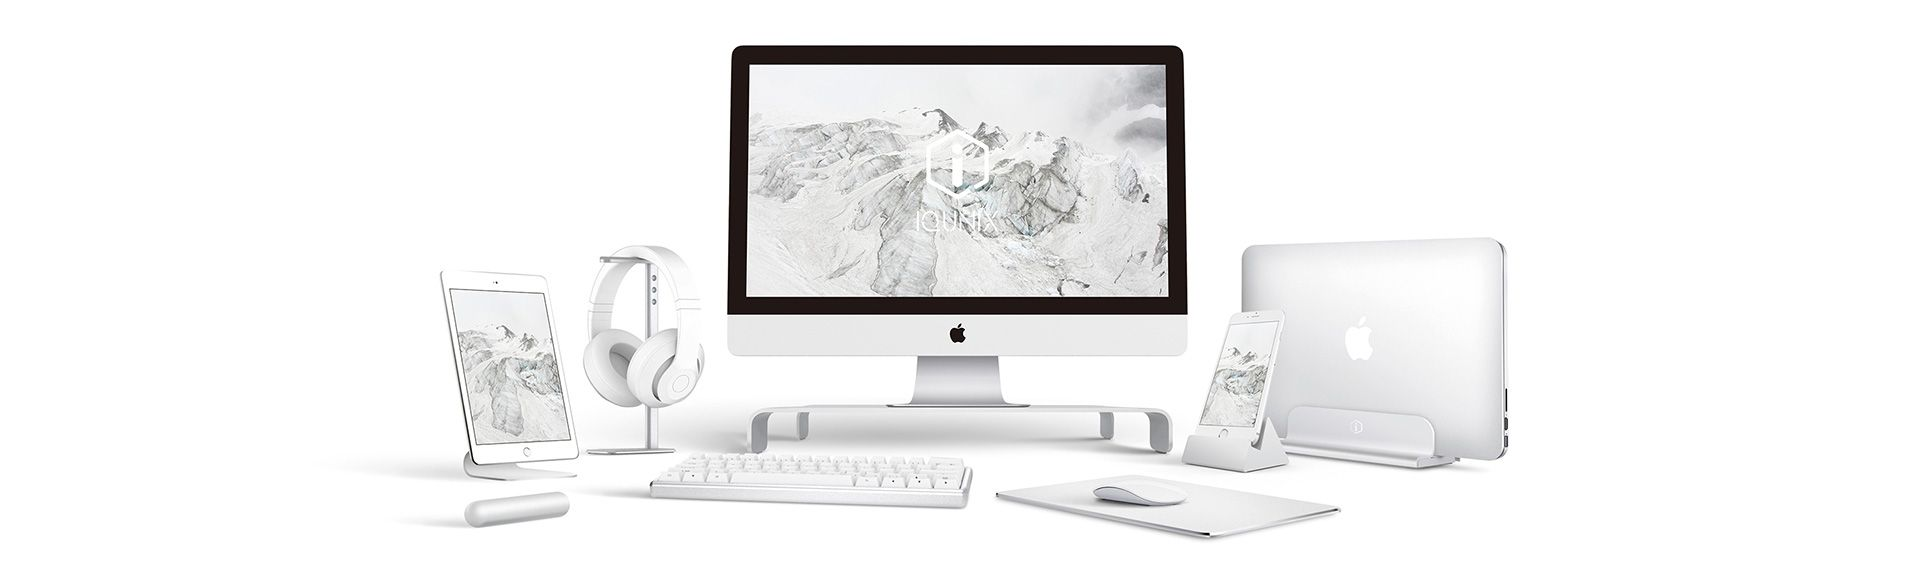 iQunix Edin Adjustable Laptop Stand - Vertical Desktop Aluminium Adjustable Stand For Macbook Pro/ Air / Microsoft Surface / Dell XPS / HP